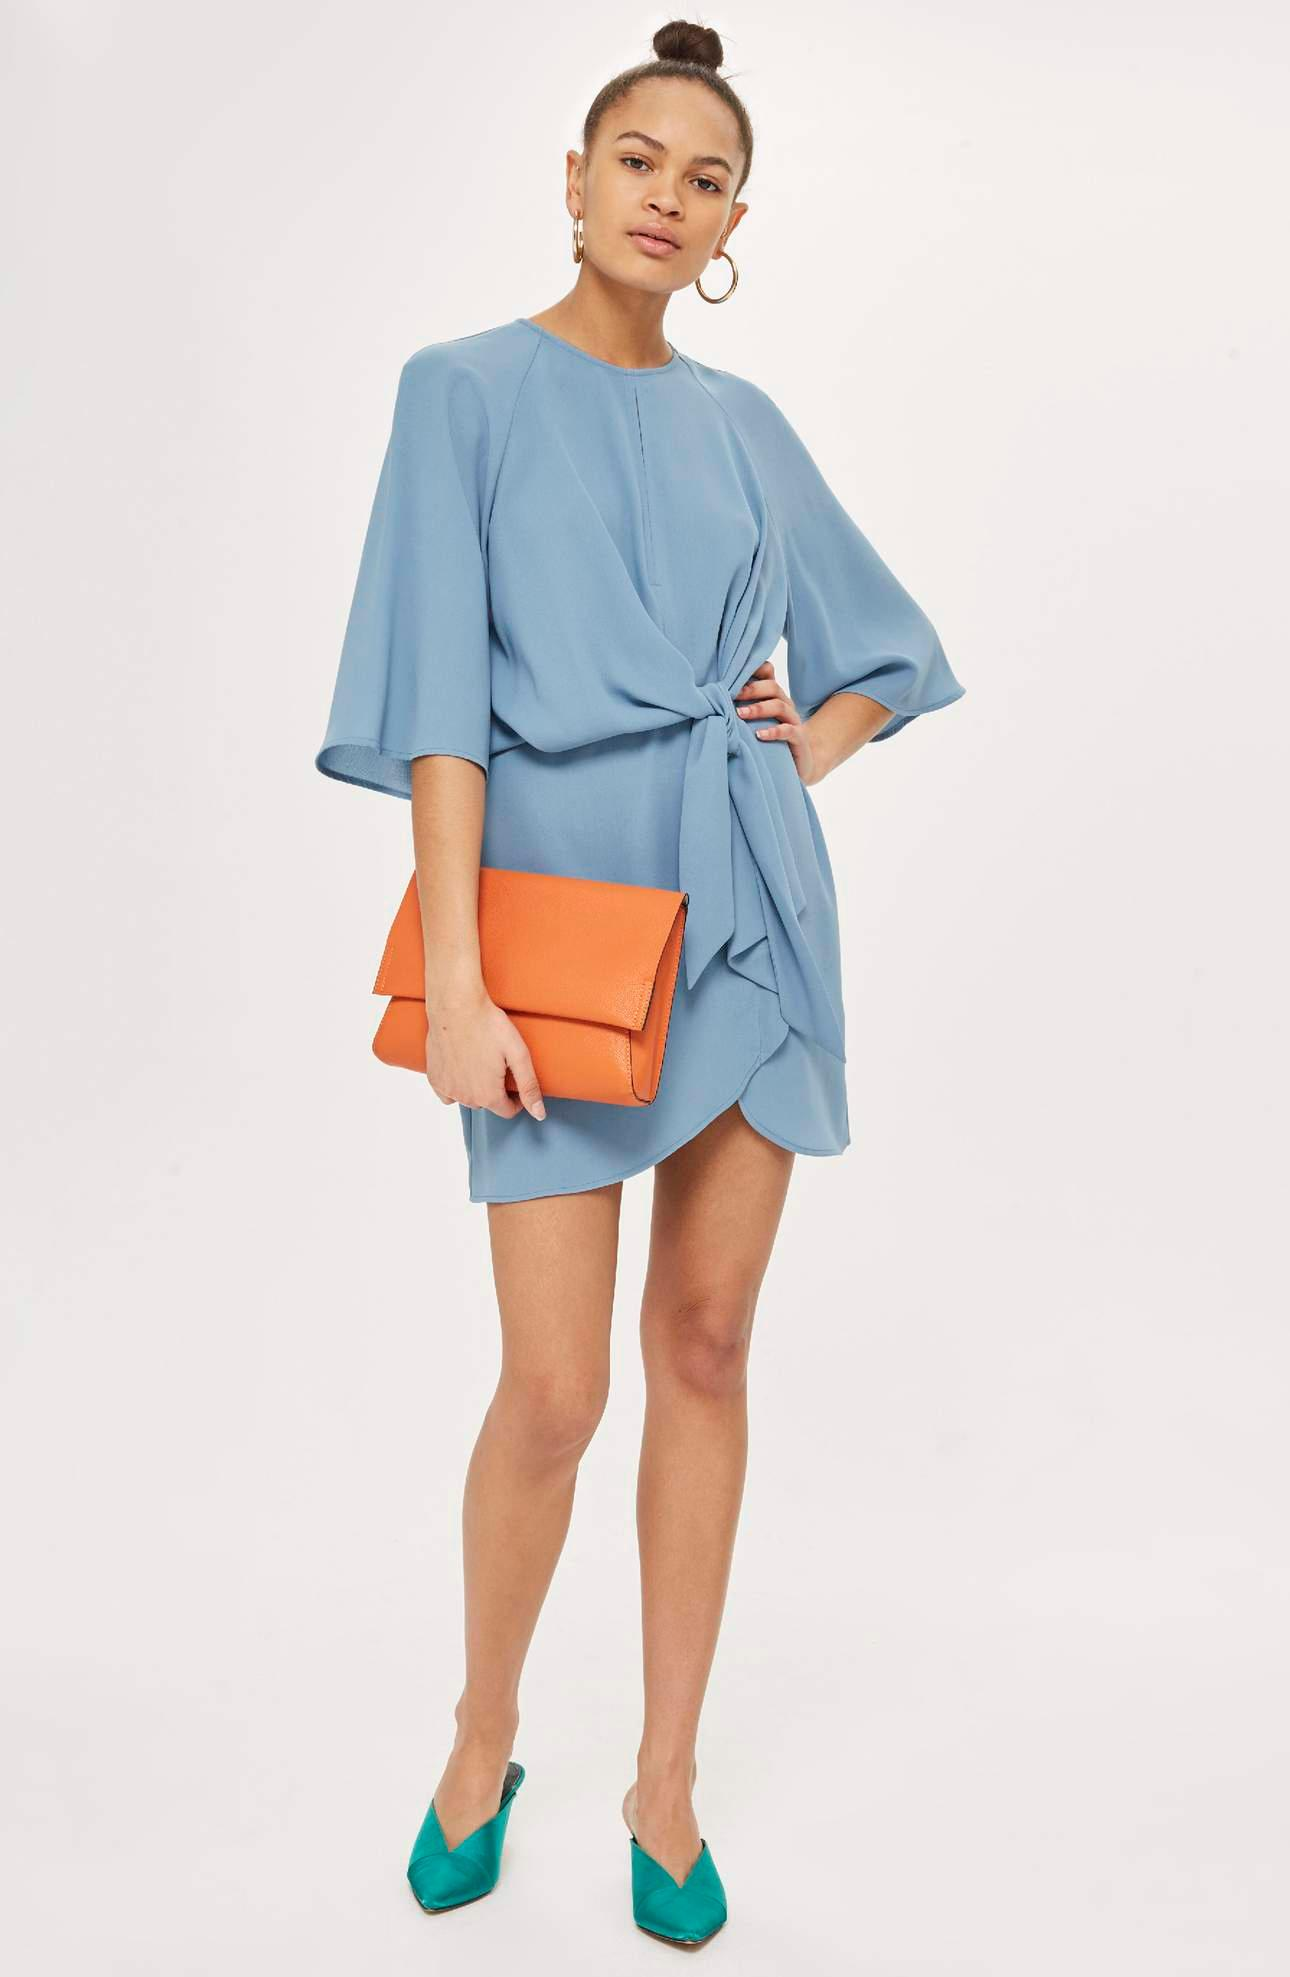 Flowy drape is the design aesthetic of this raglan-sleeve dress with a tulip-style skirt and panels that gather to knot at the front waist.<p>$80.00 at Nordstrom. (Image: Nordstrom){&nbsp;}</p>